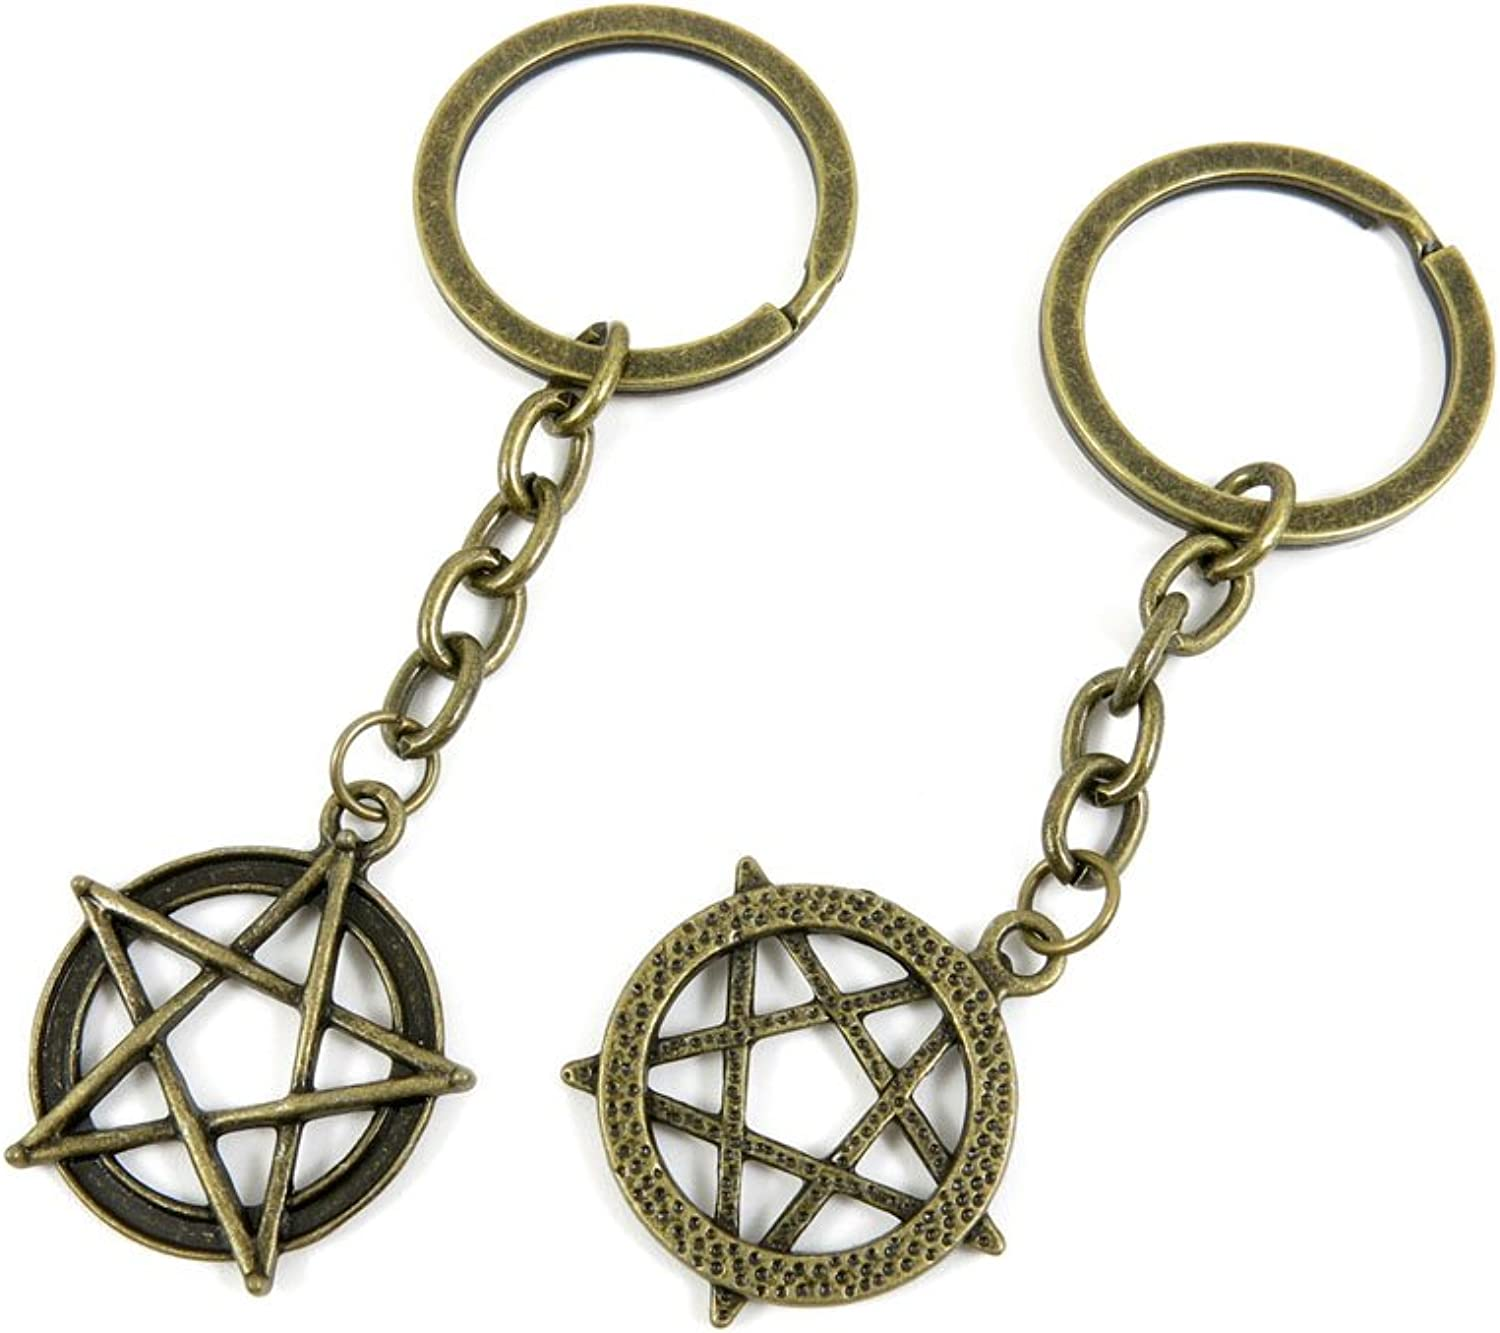 100 PCS Keyrings Keychains Key Ring Chains Tags Jewelry Findings Clasps Buckles Supplies N7OA0 Fivepointed Star